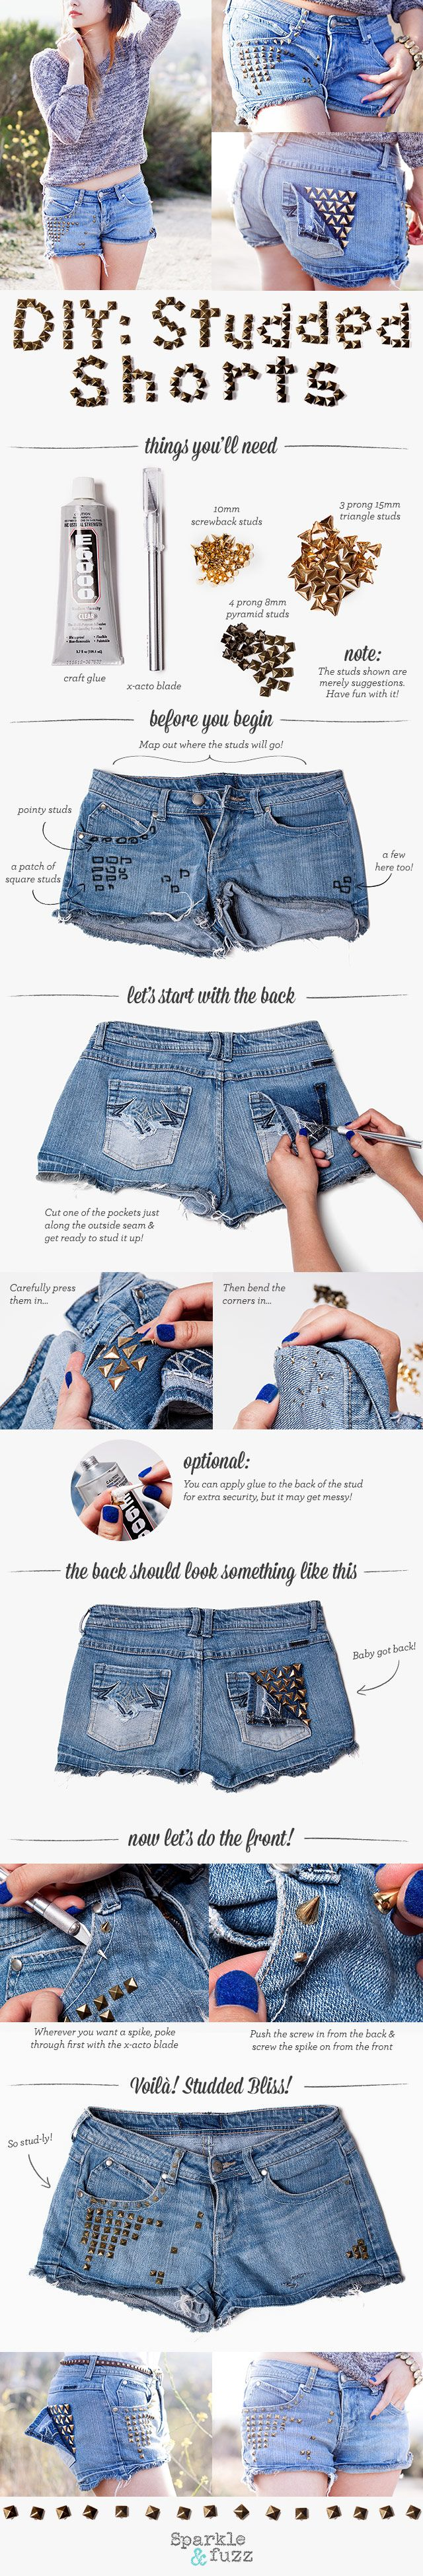 16 DIY Fashion Projects With Studs and Spikes